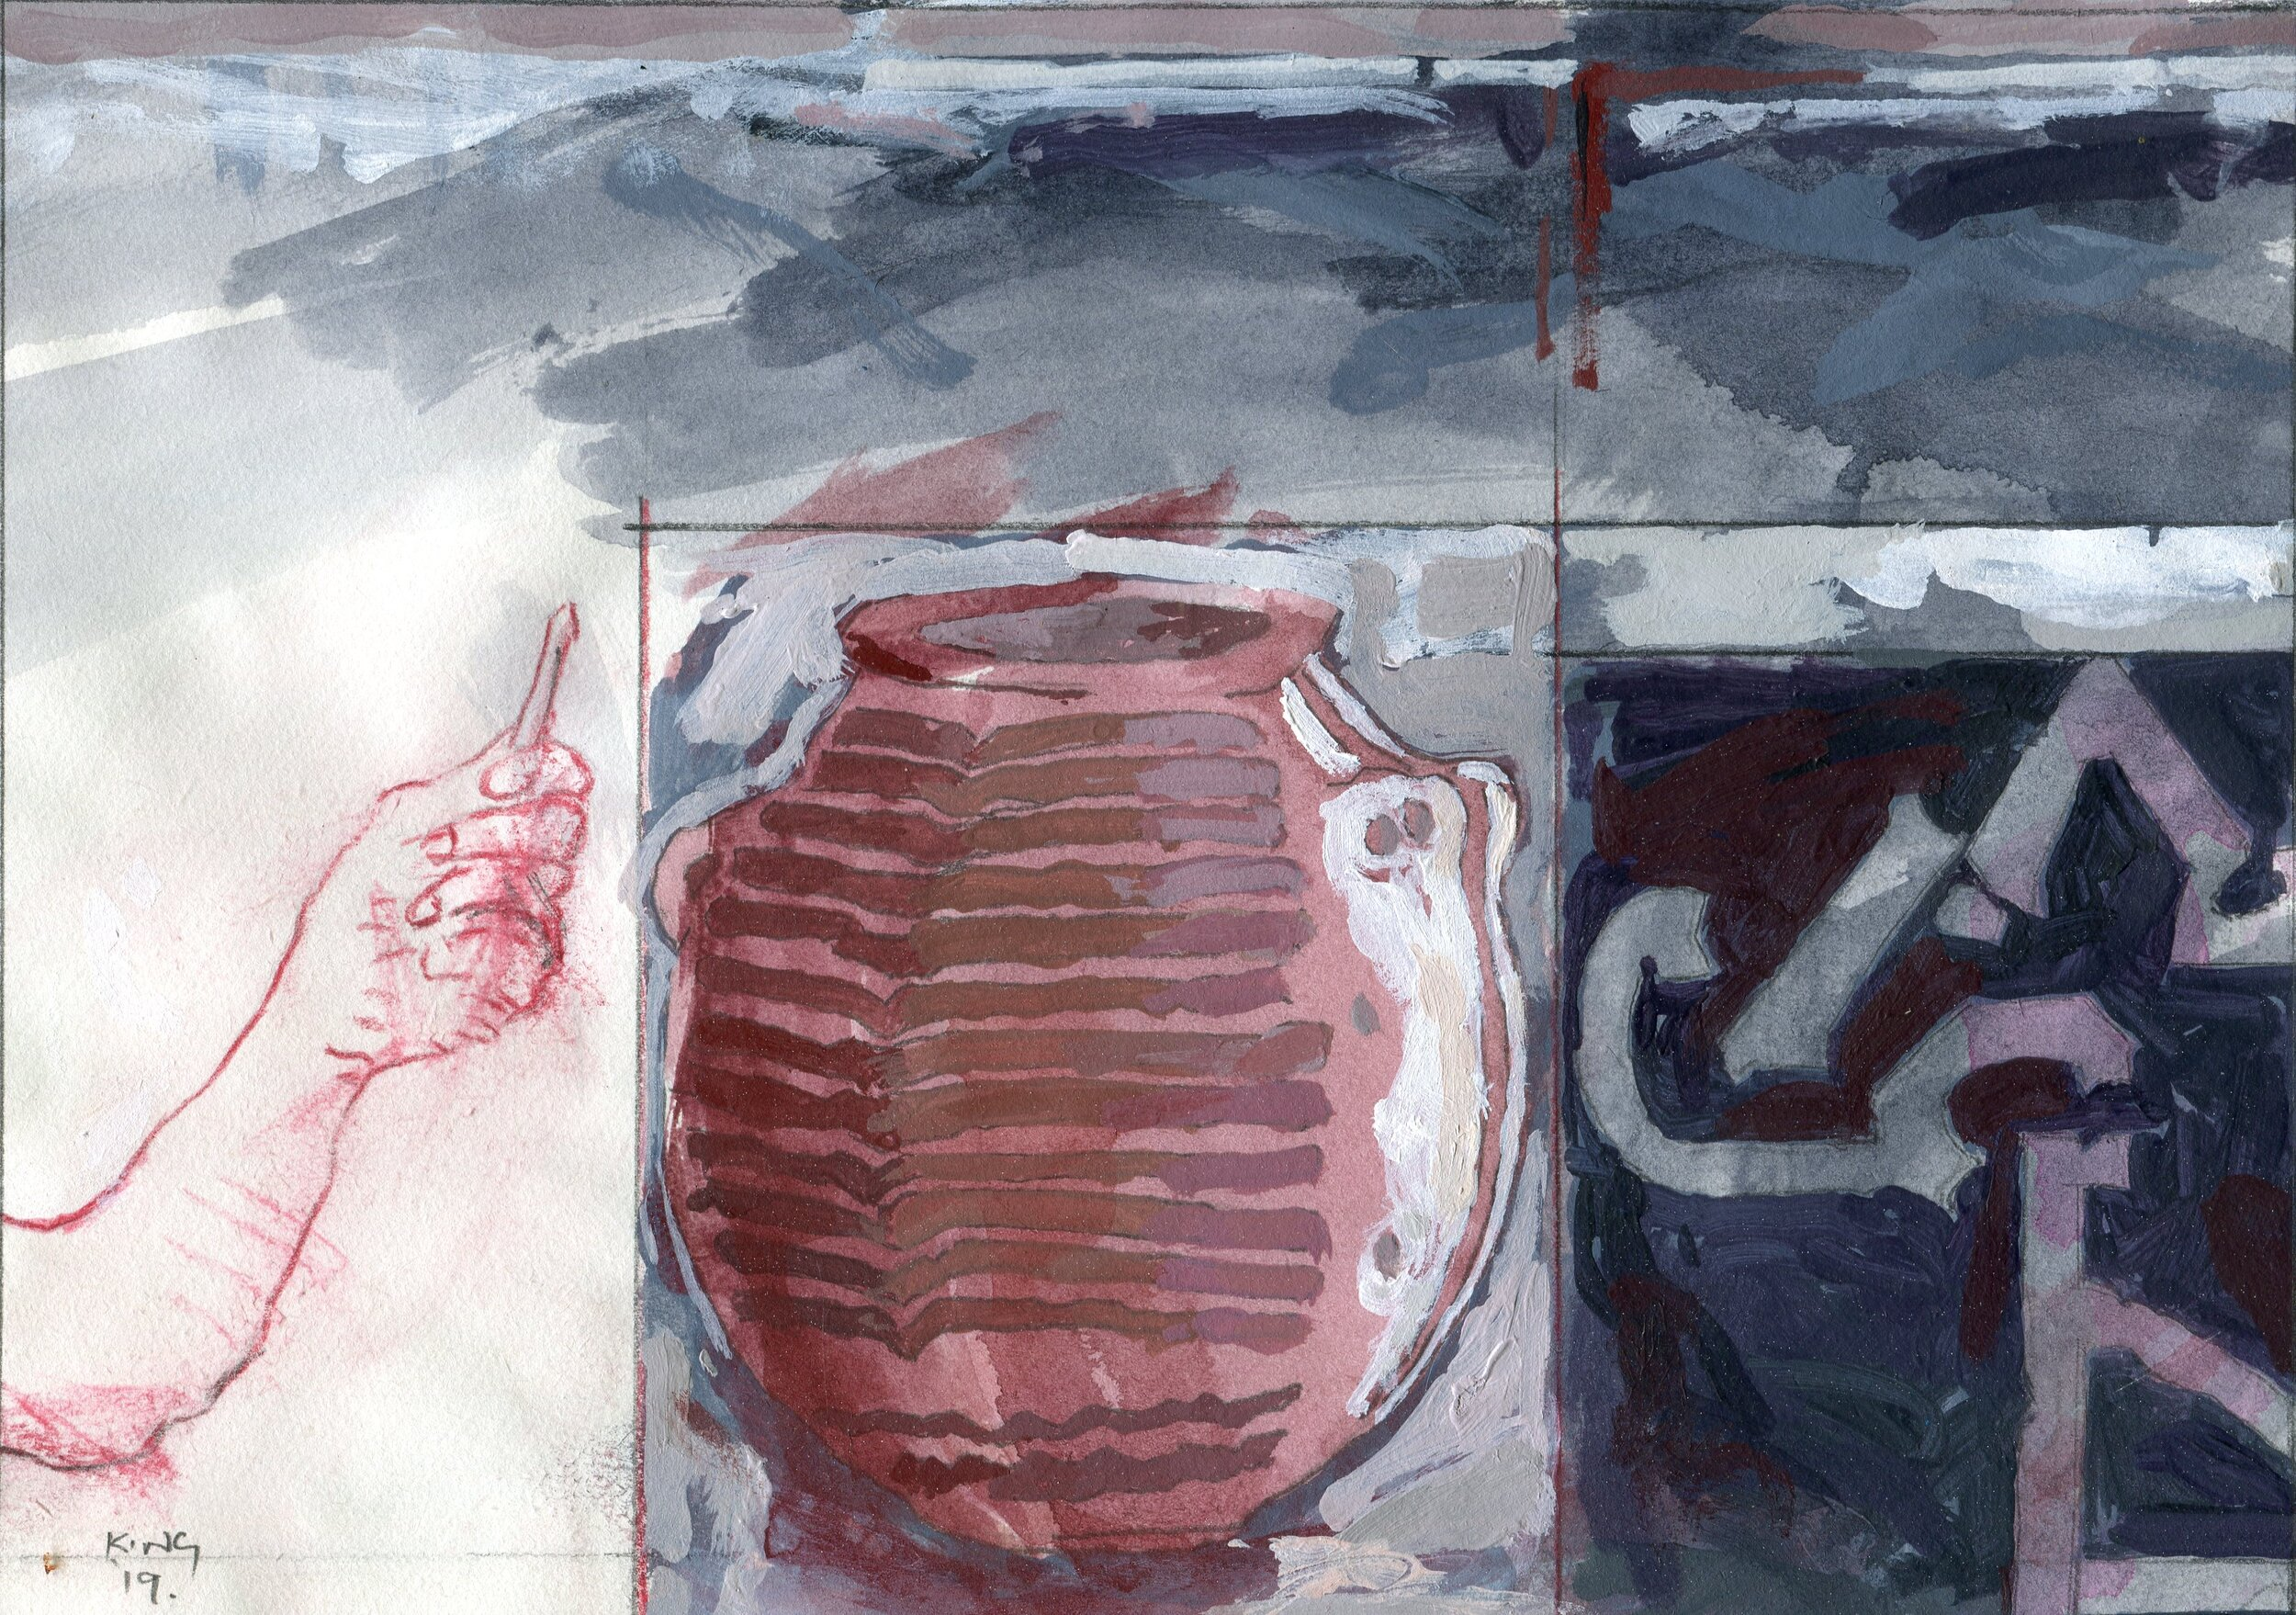 53a  Terrence King  The artist, an Egyptian vessel and Michelangelo's fortifications for Florence  mixed media on paper